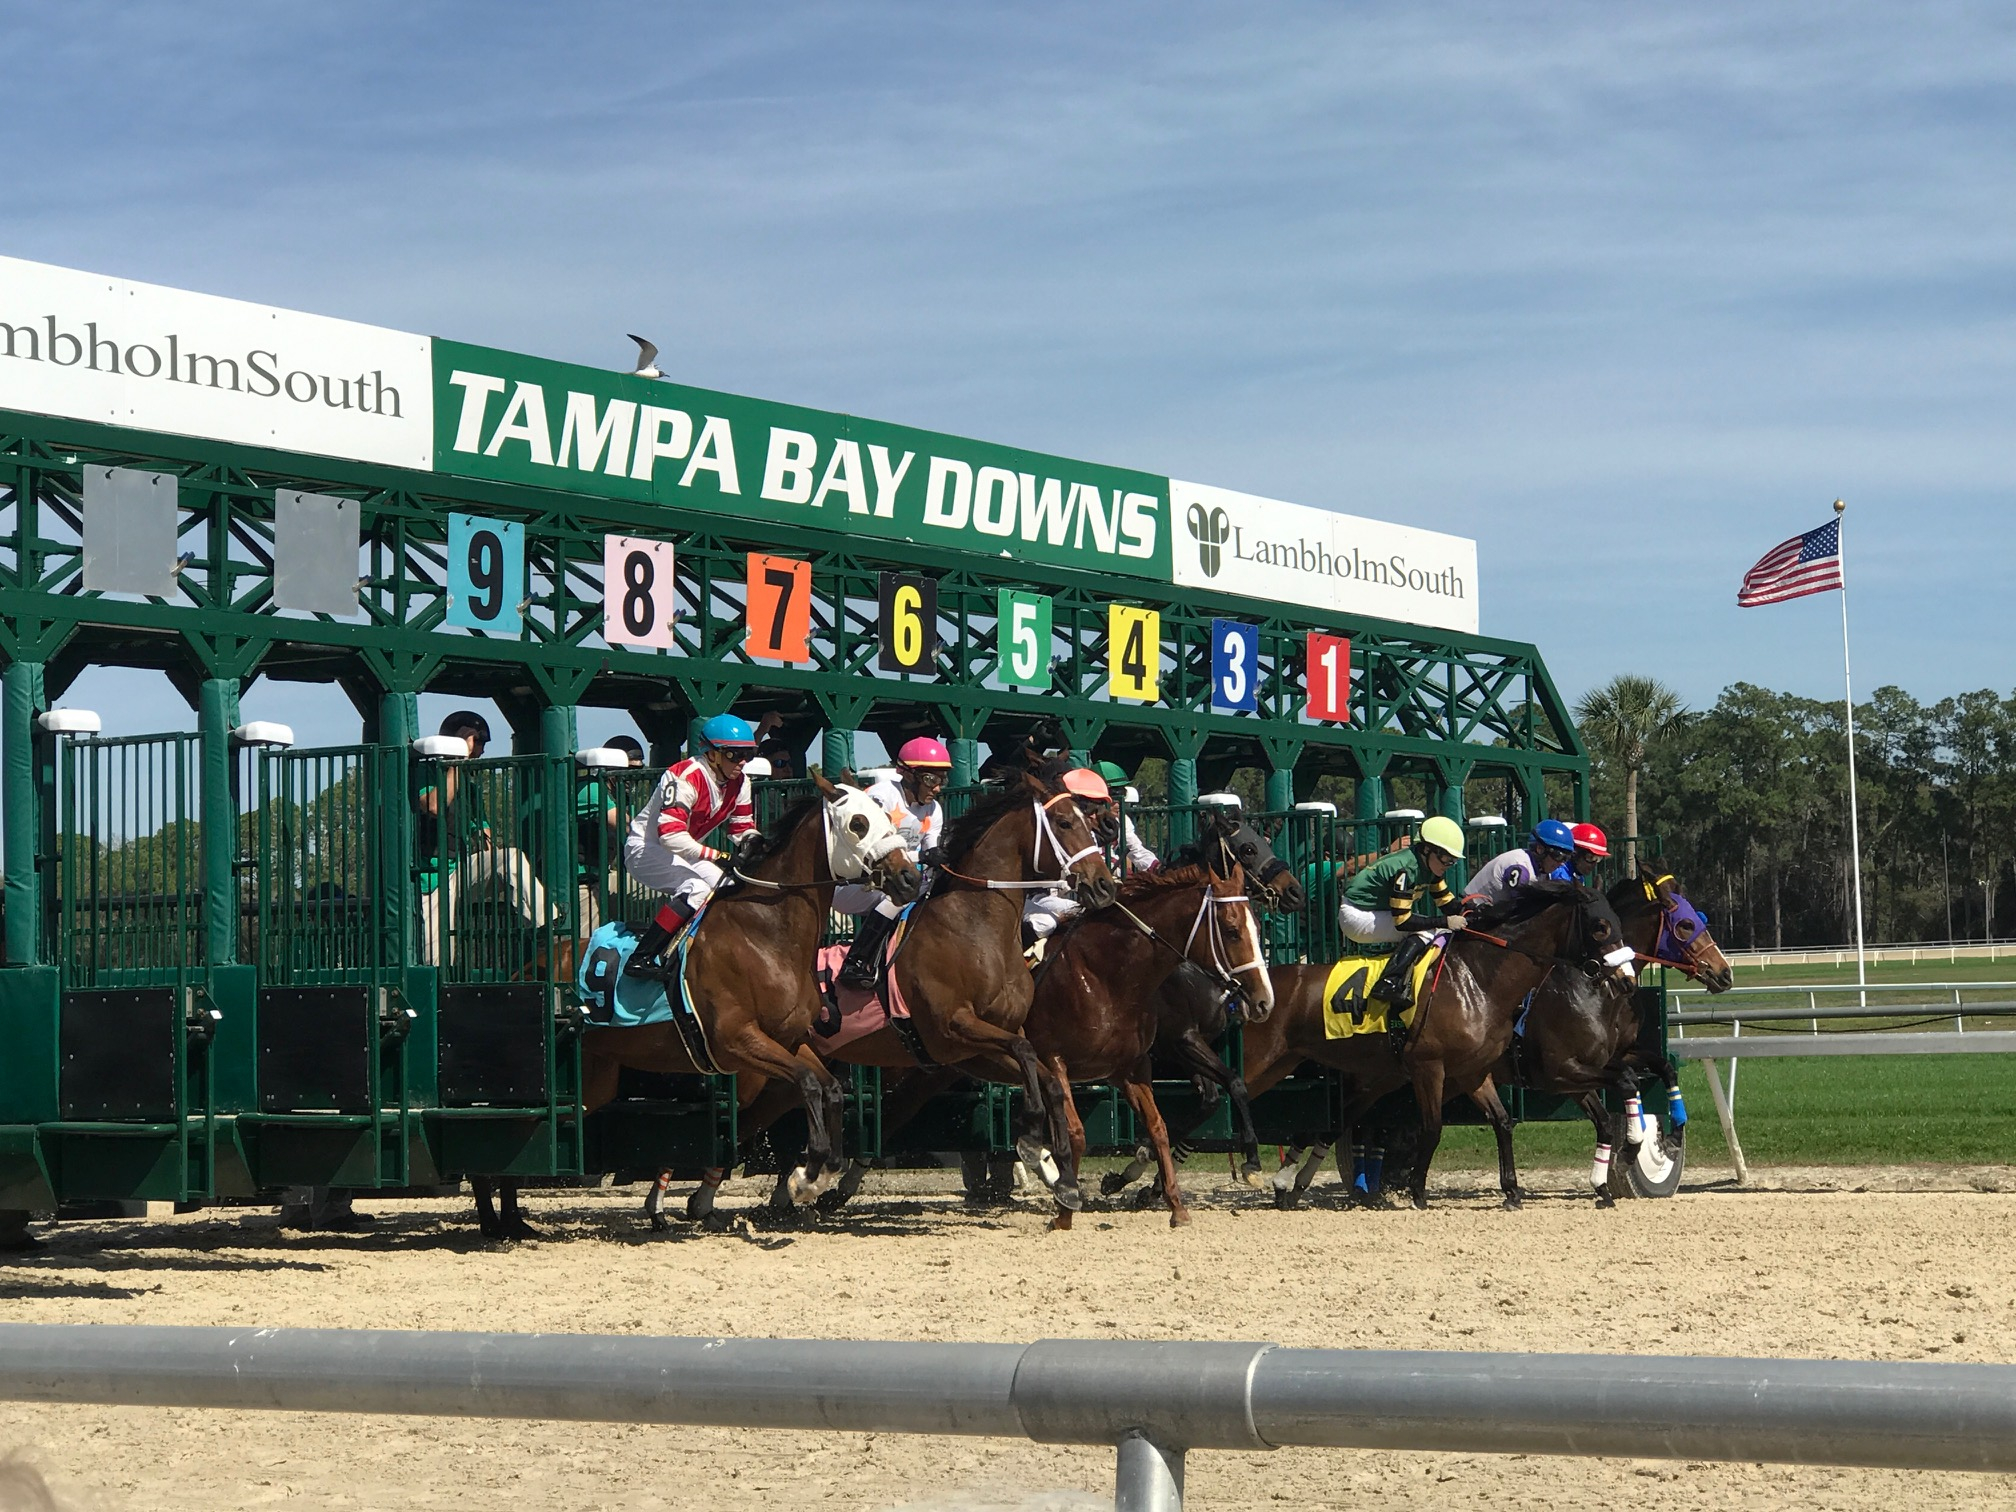 Gulfstream, Tampa Bay Downs, Oaklawn & More Still Available Inside Tampa Bay Downs Race Track Calendar